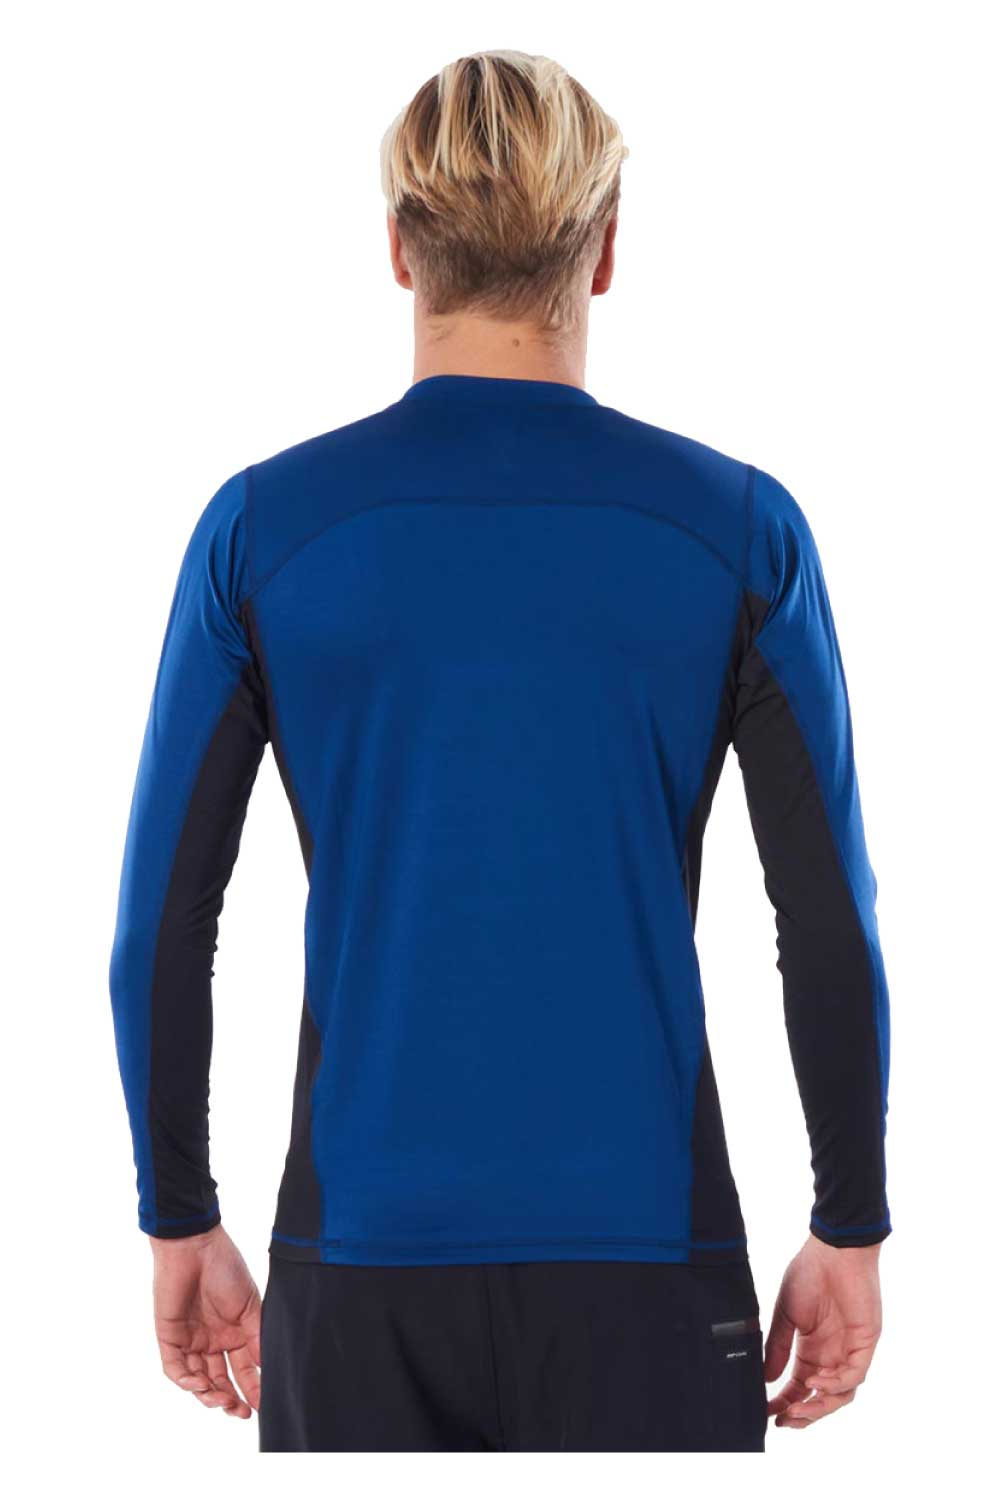 Rip Curl Mens Drive Relaxed Long Sleeve UV Tee Rash Vest